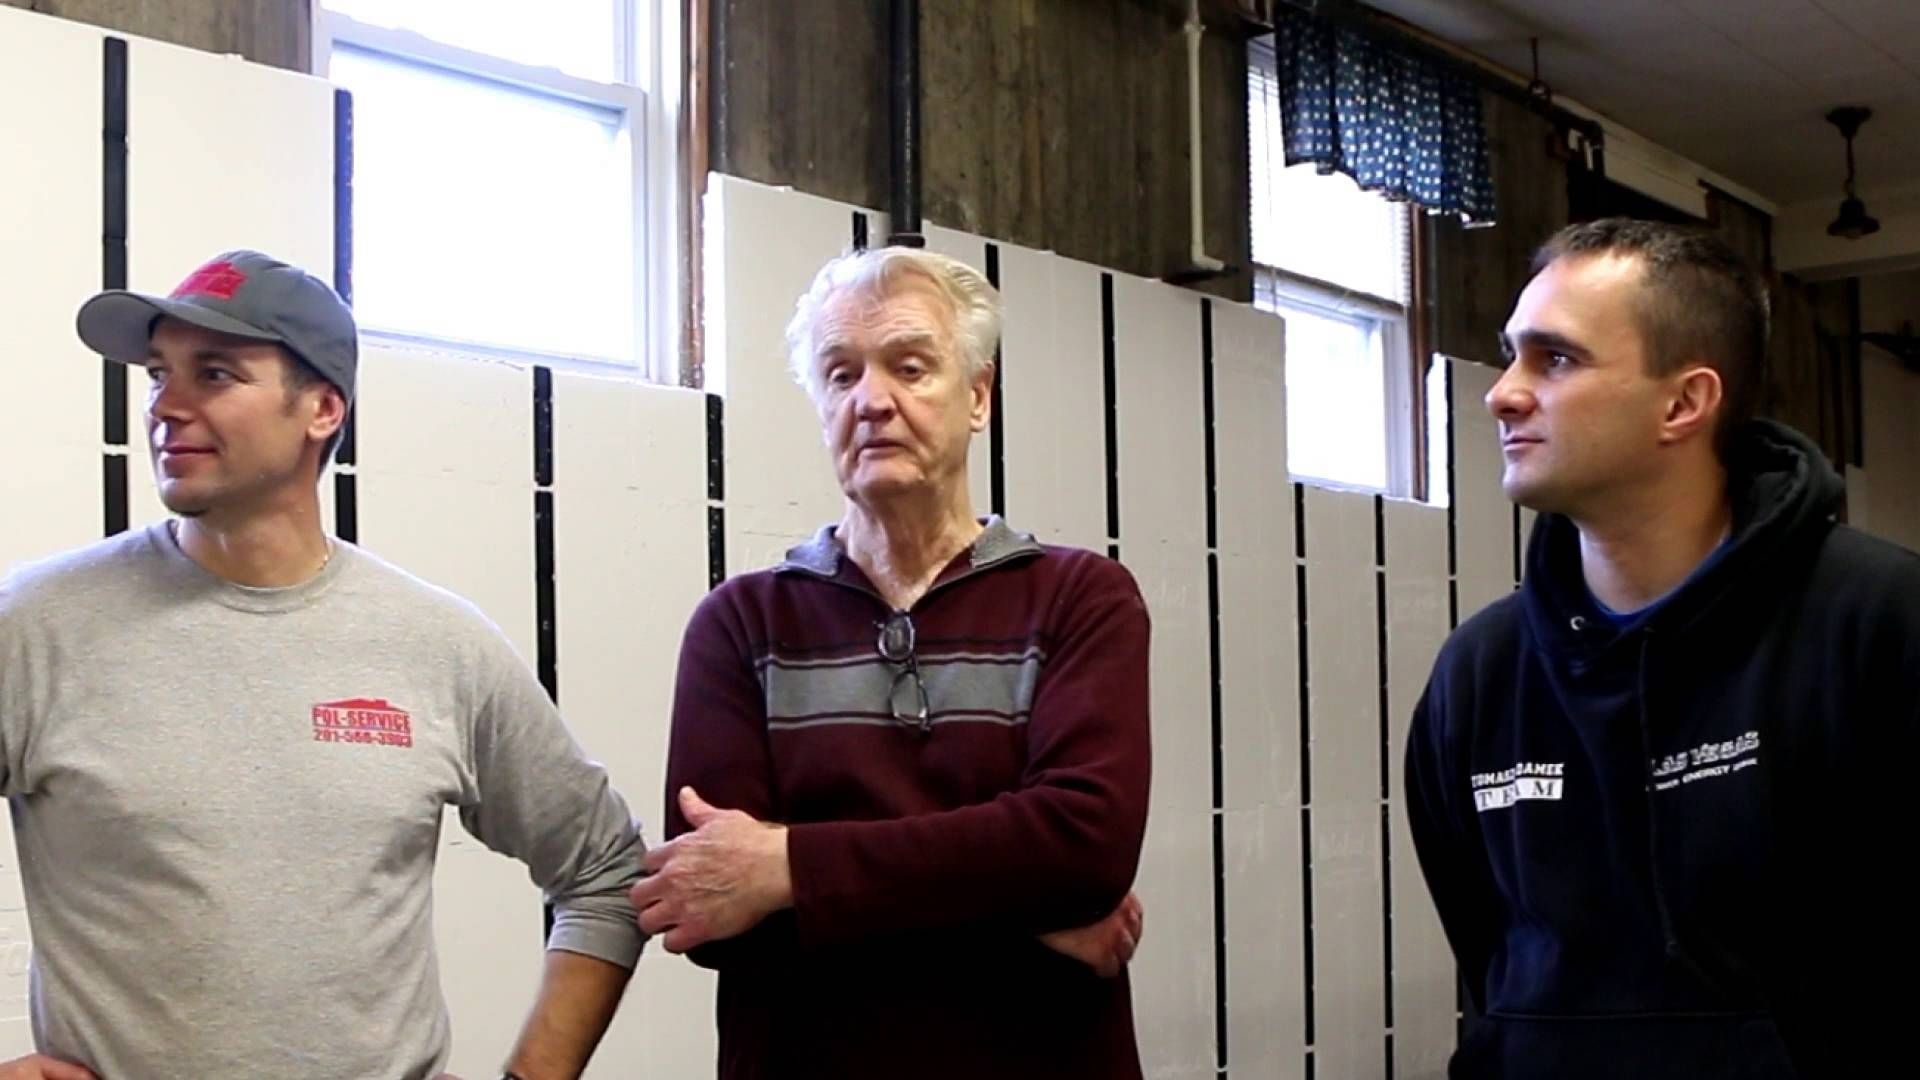 Folks involved in an InSoFast install in the basement of St Michaels Church in New Jersey talk about their experience working with the panels.